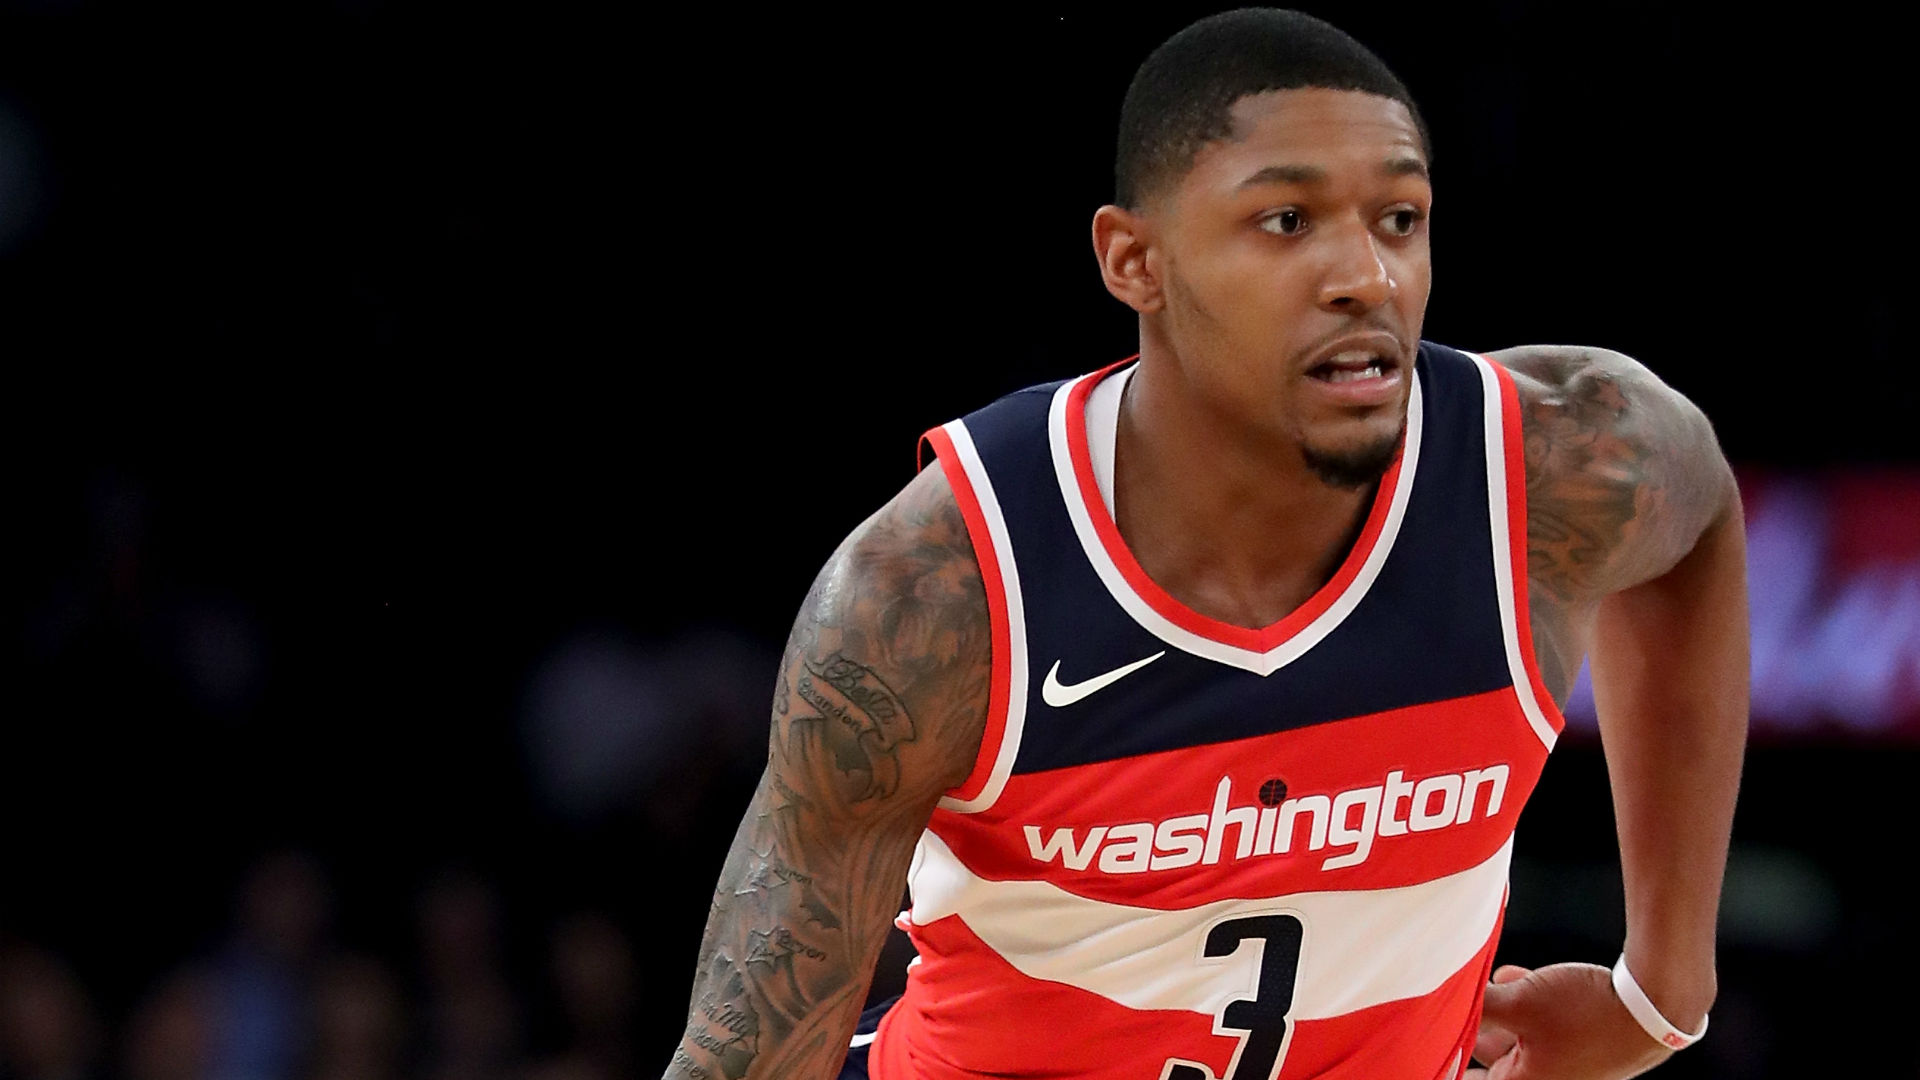 reputable site d3762 8e37b NBA wrap: Bradley Beal, Kelly Oubre Jr. lead Wizards past ...